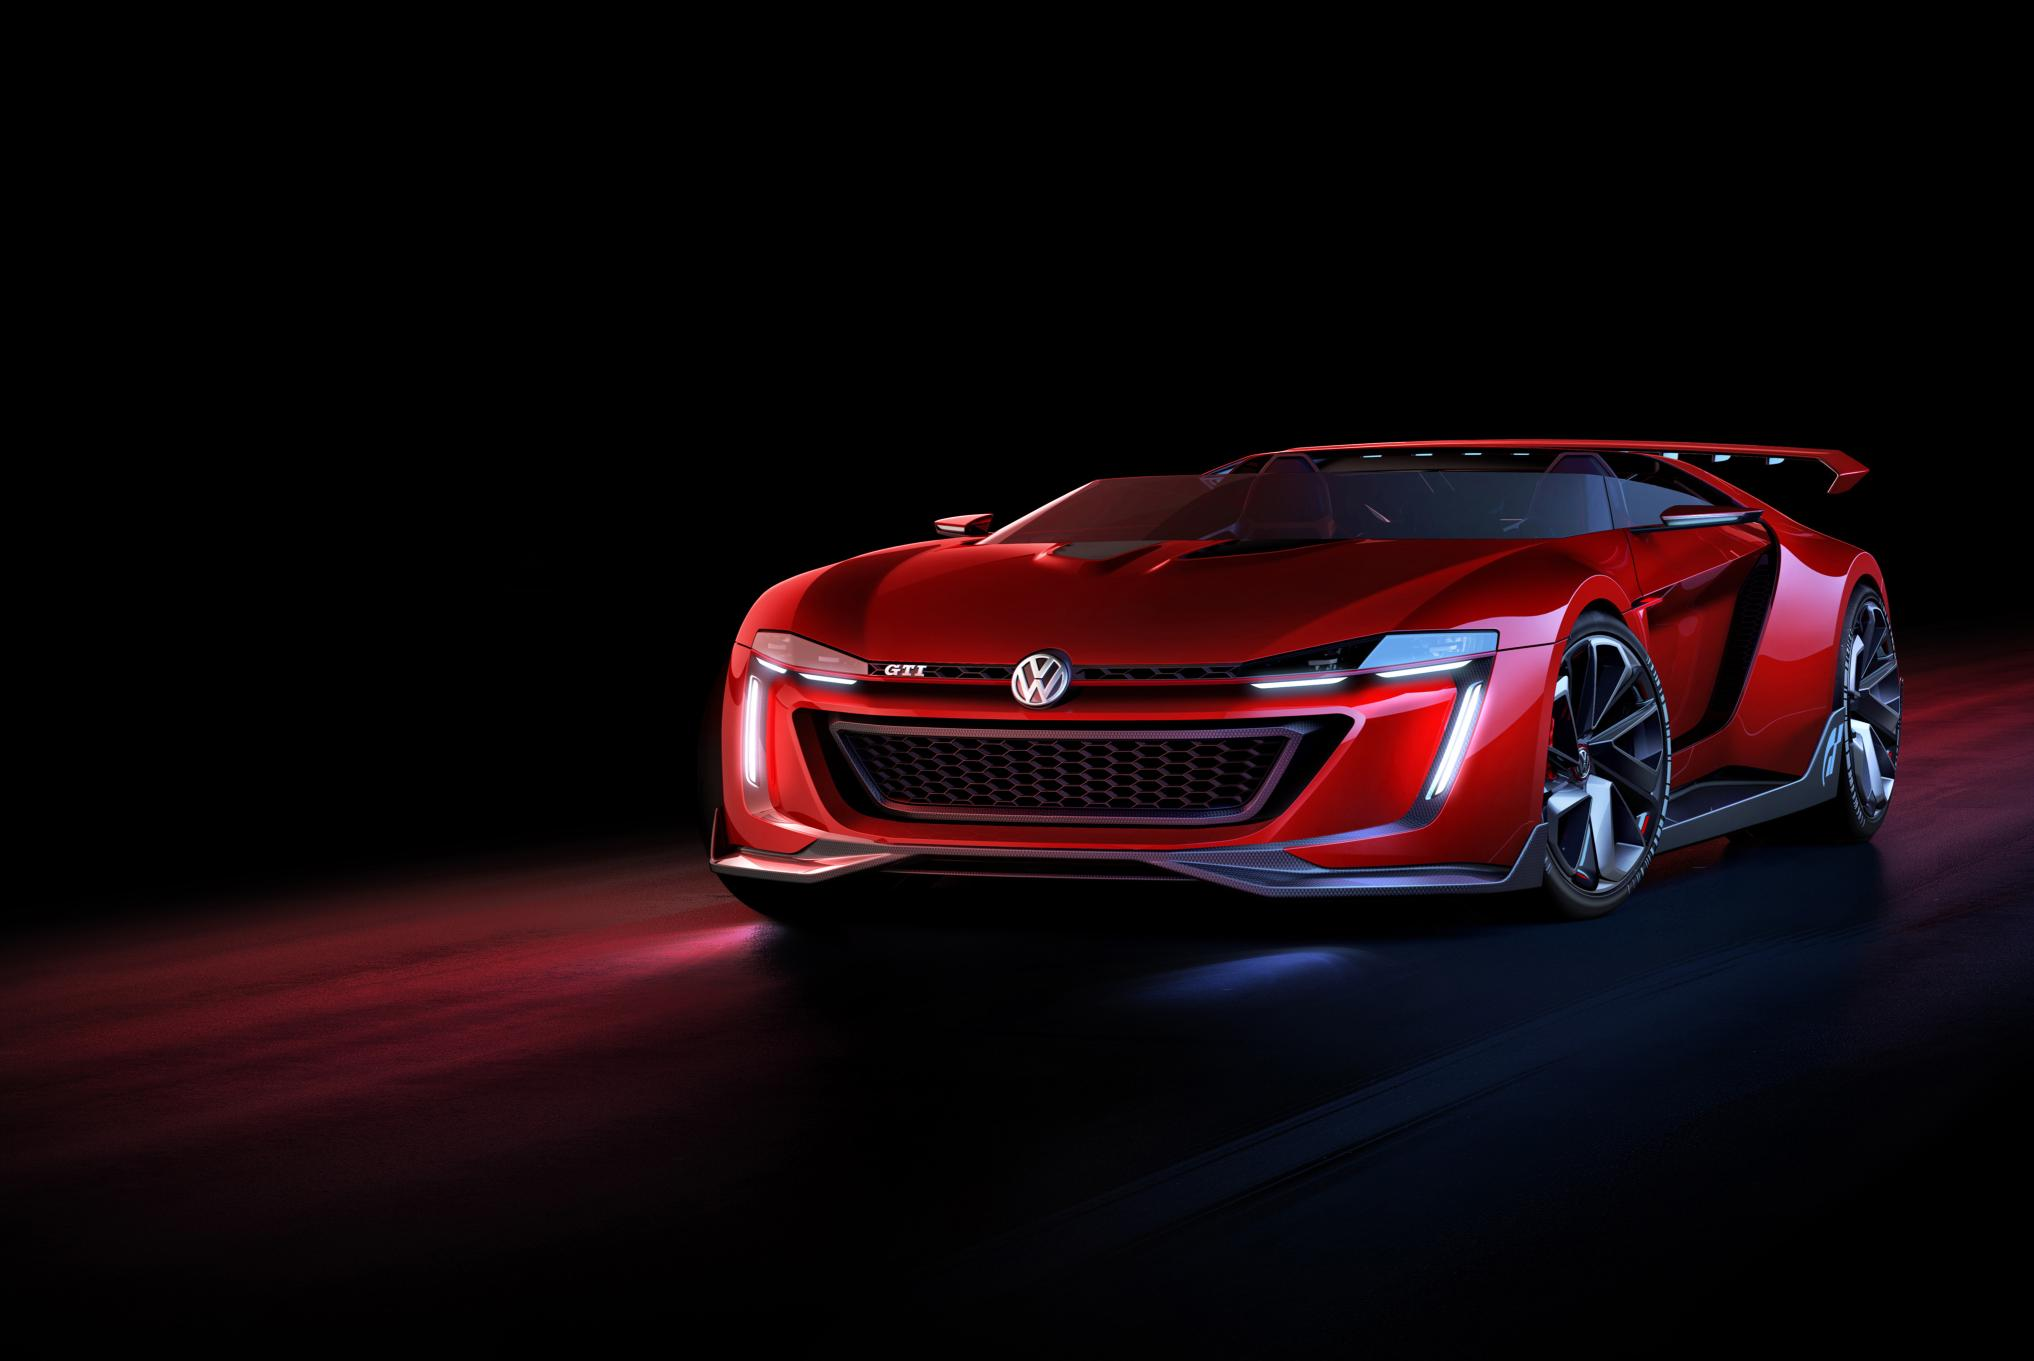 Hot 370kW GTI Roadster: Latest News